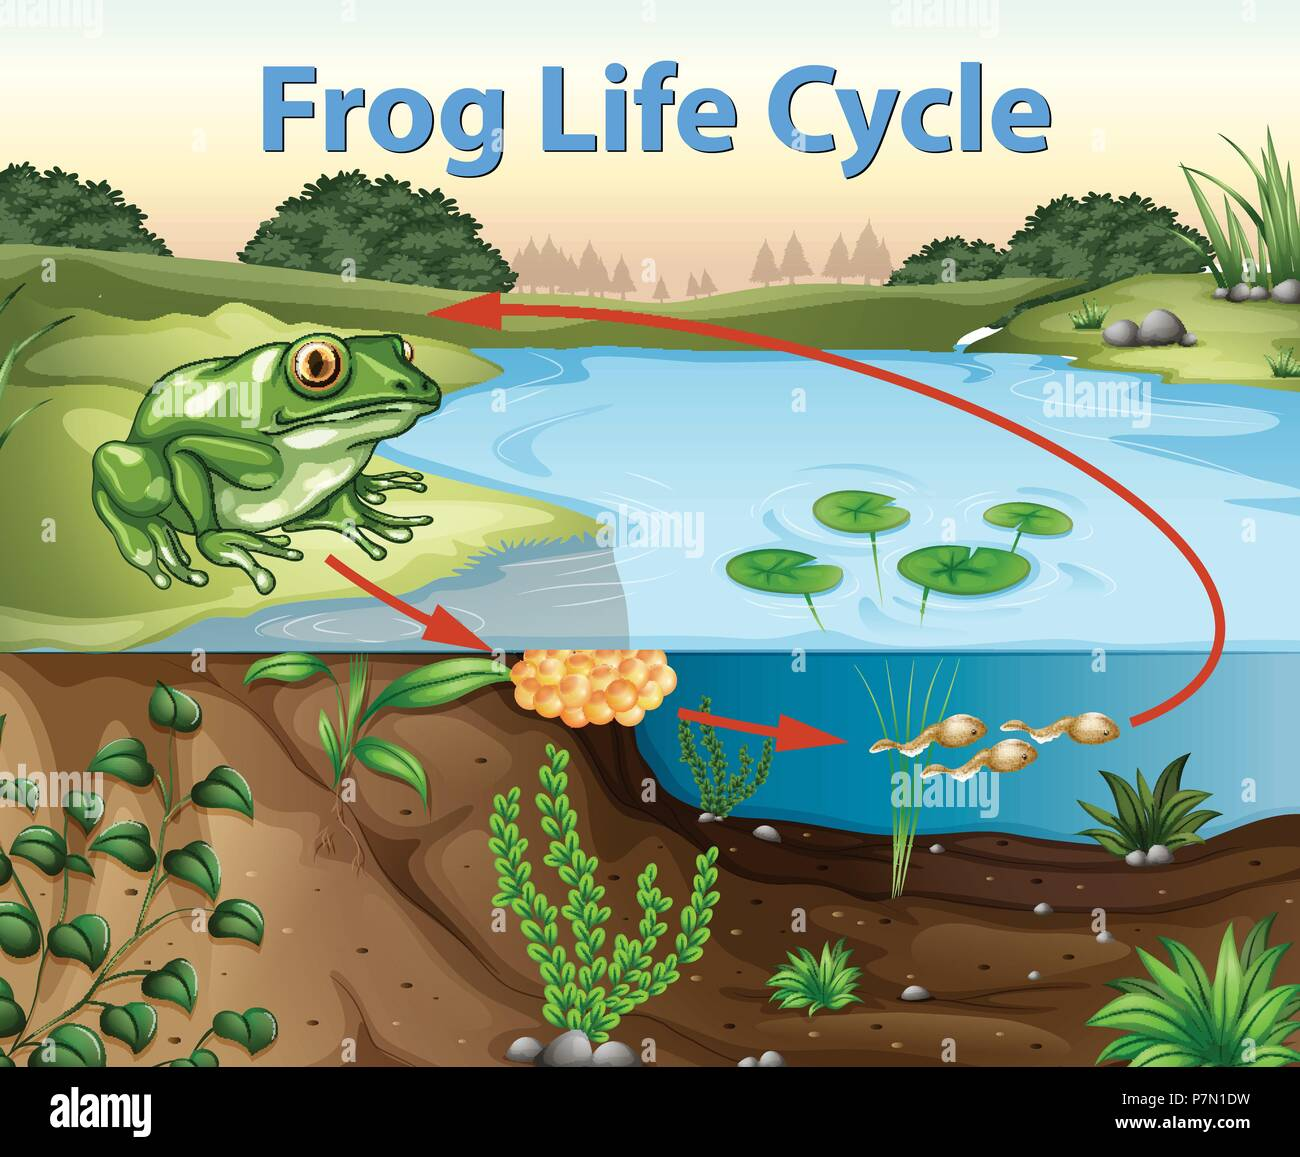 Science Of Frog Life Cycle Illustration Stock Vector Art